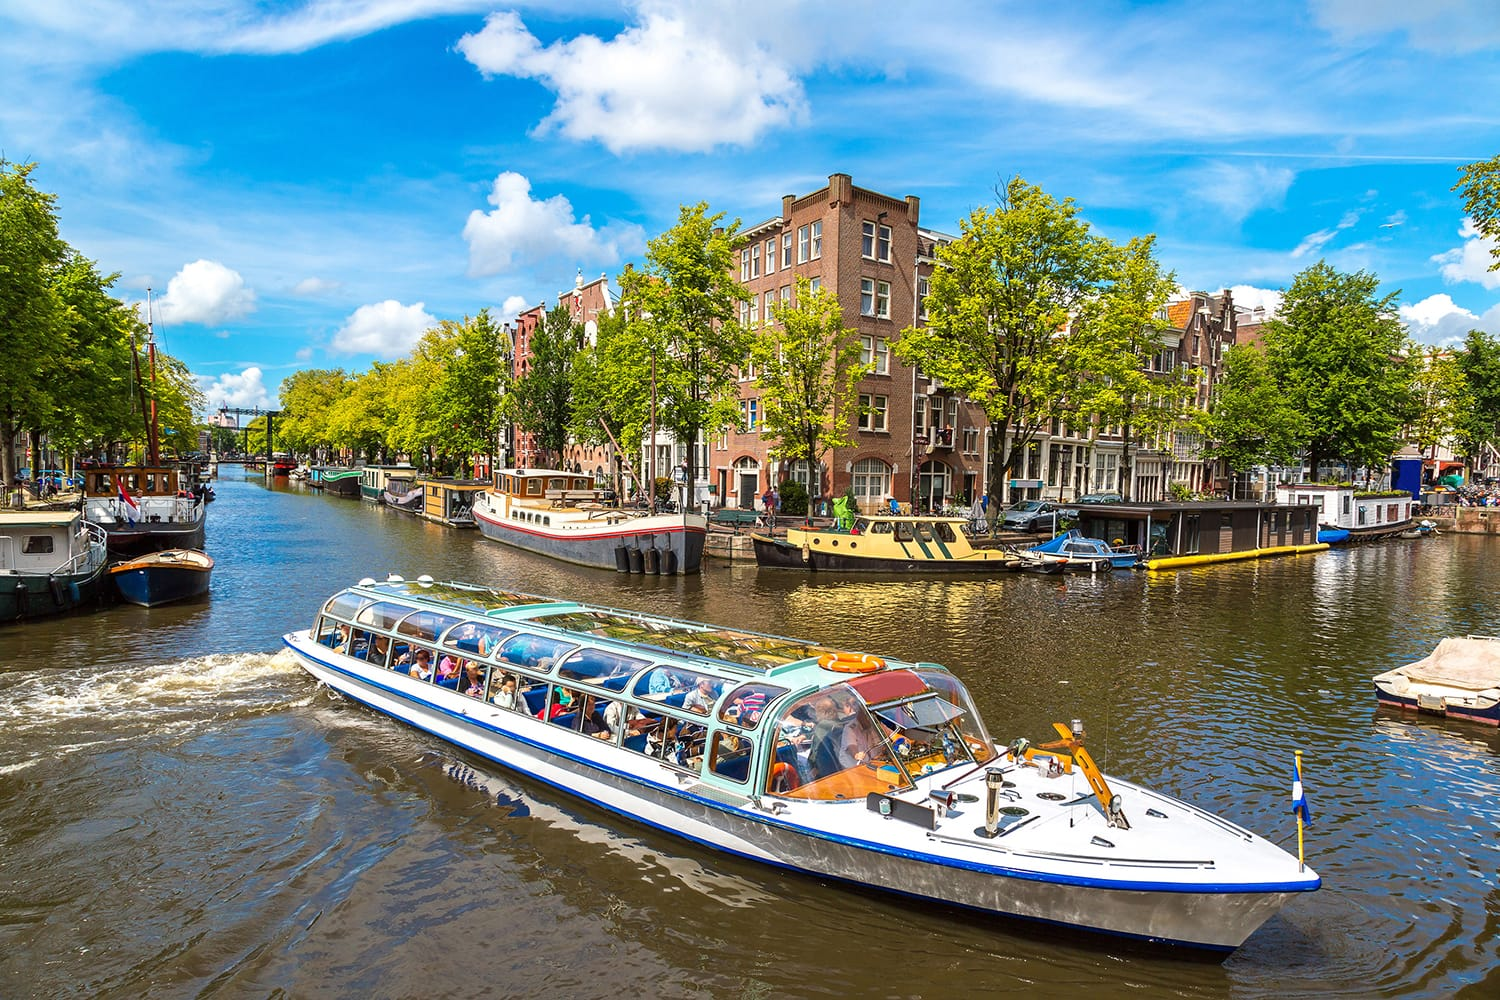 Boat cruise in Amsterdam, Netherlands